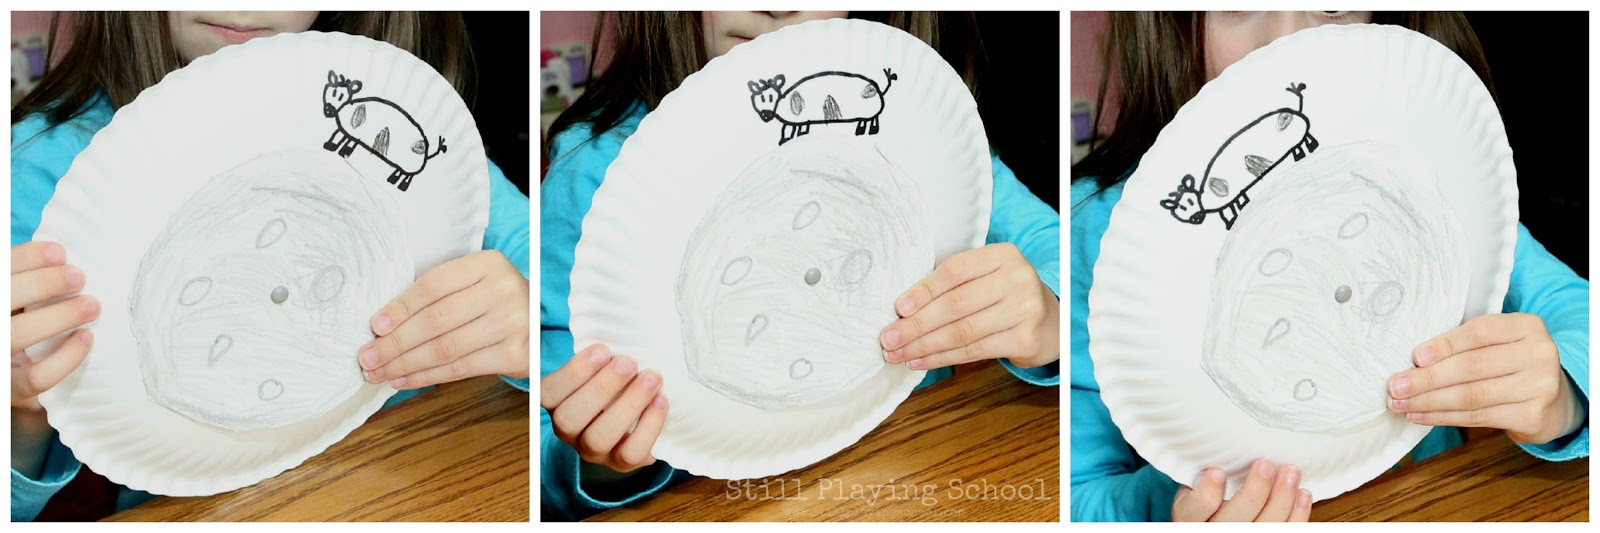 the cow jumped over the moon craft still playing